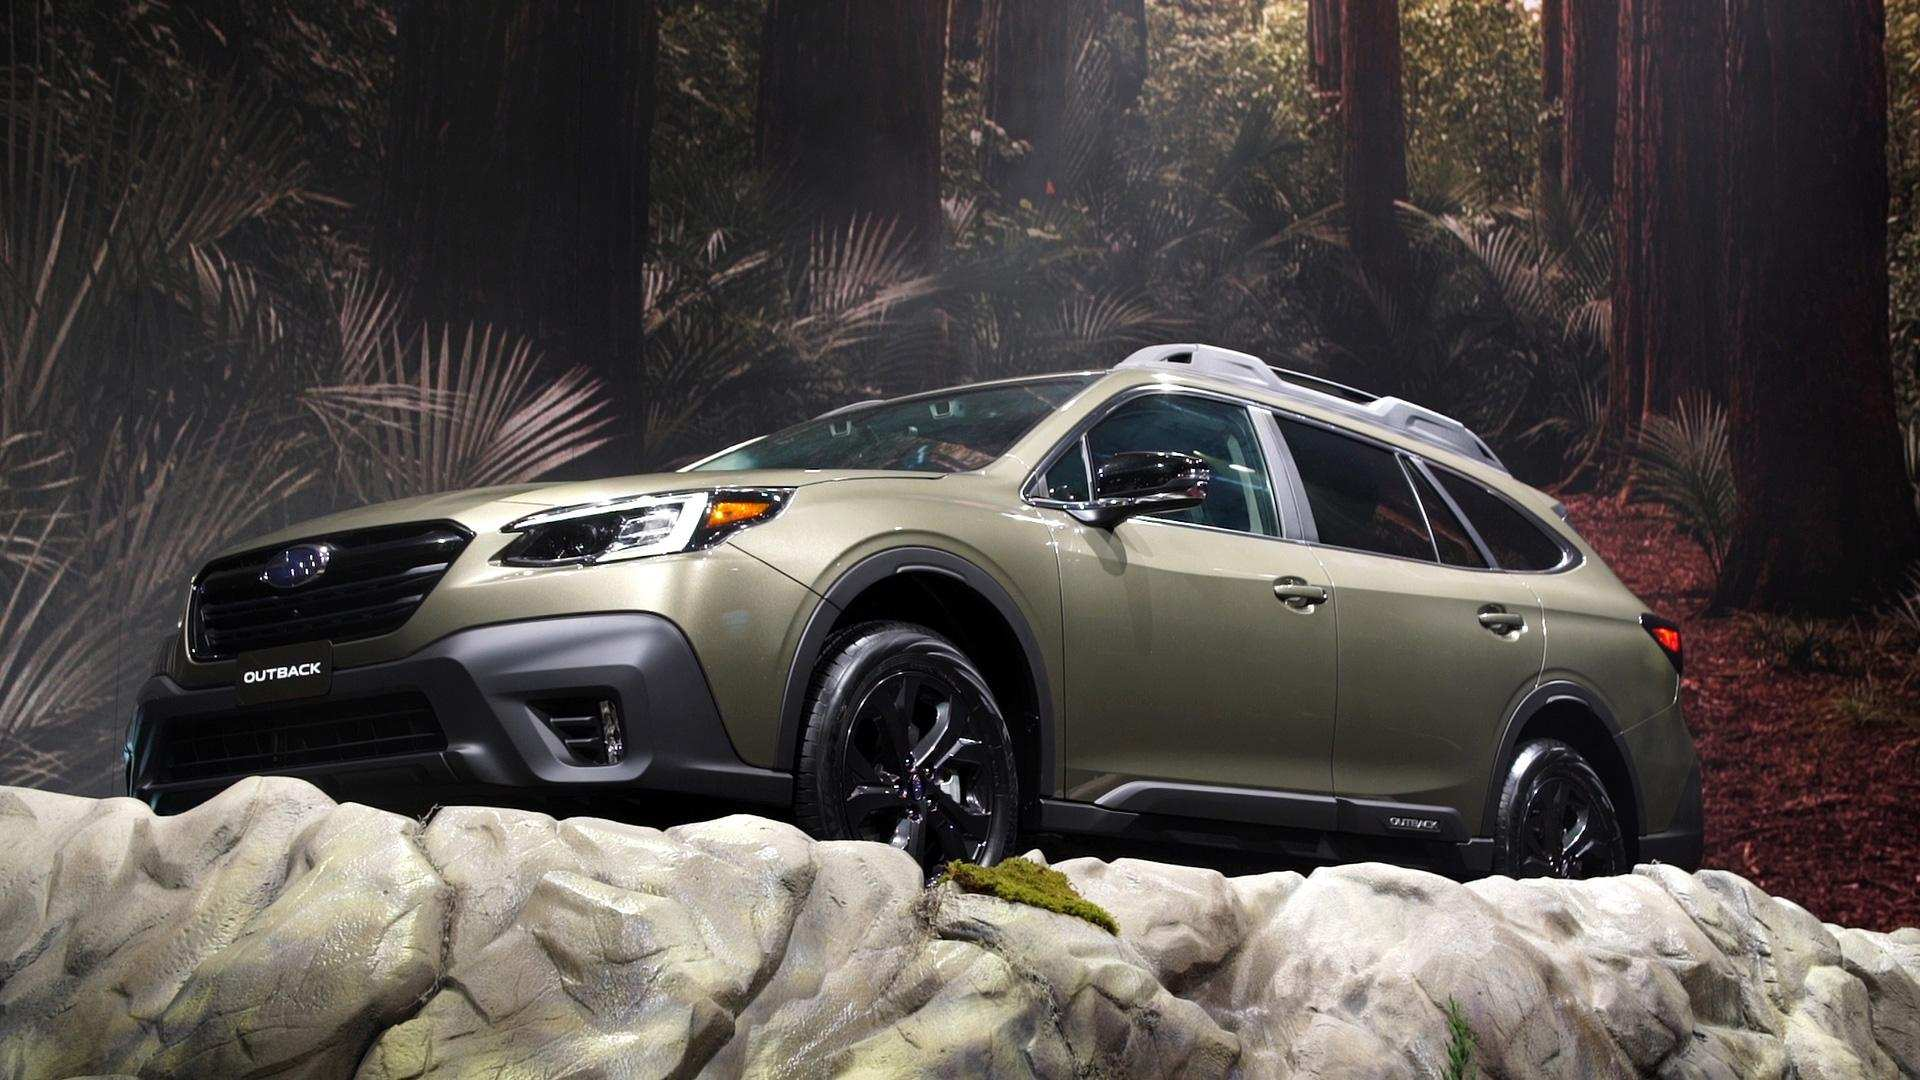 52 The Best 2020 Subaru Outback Gas Mileage Redesign And Concept